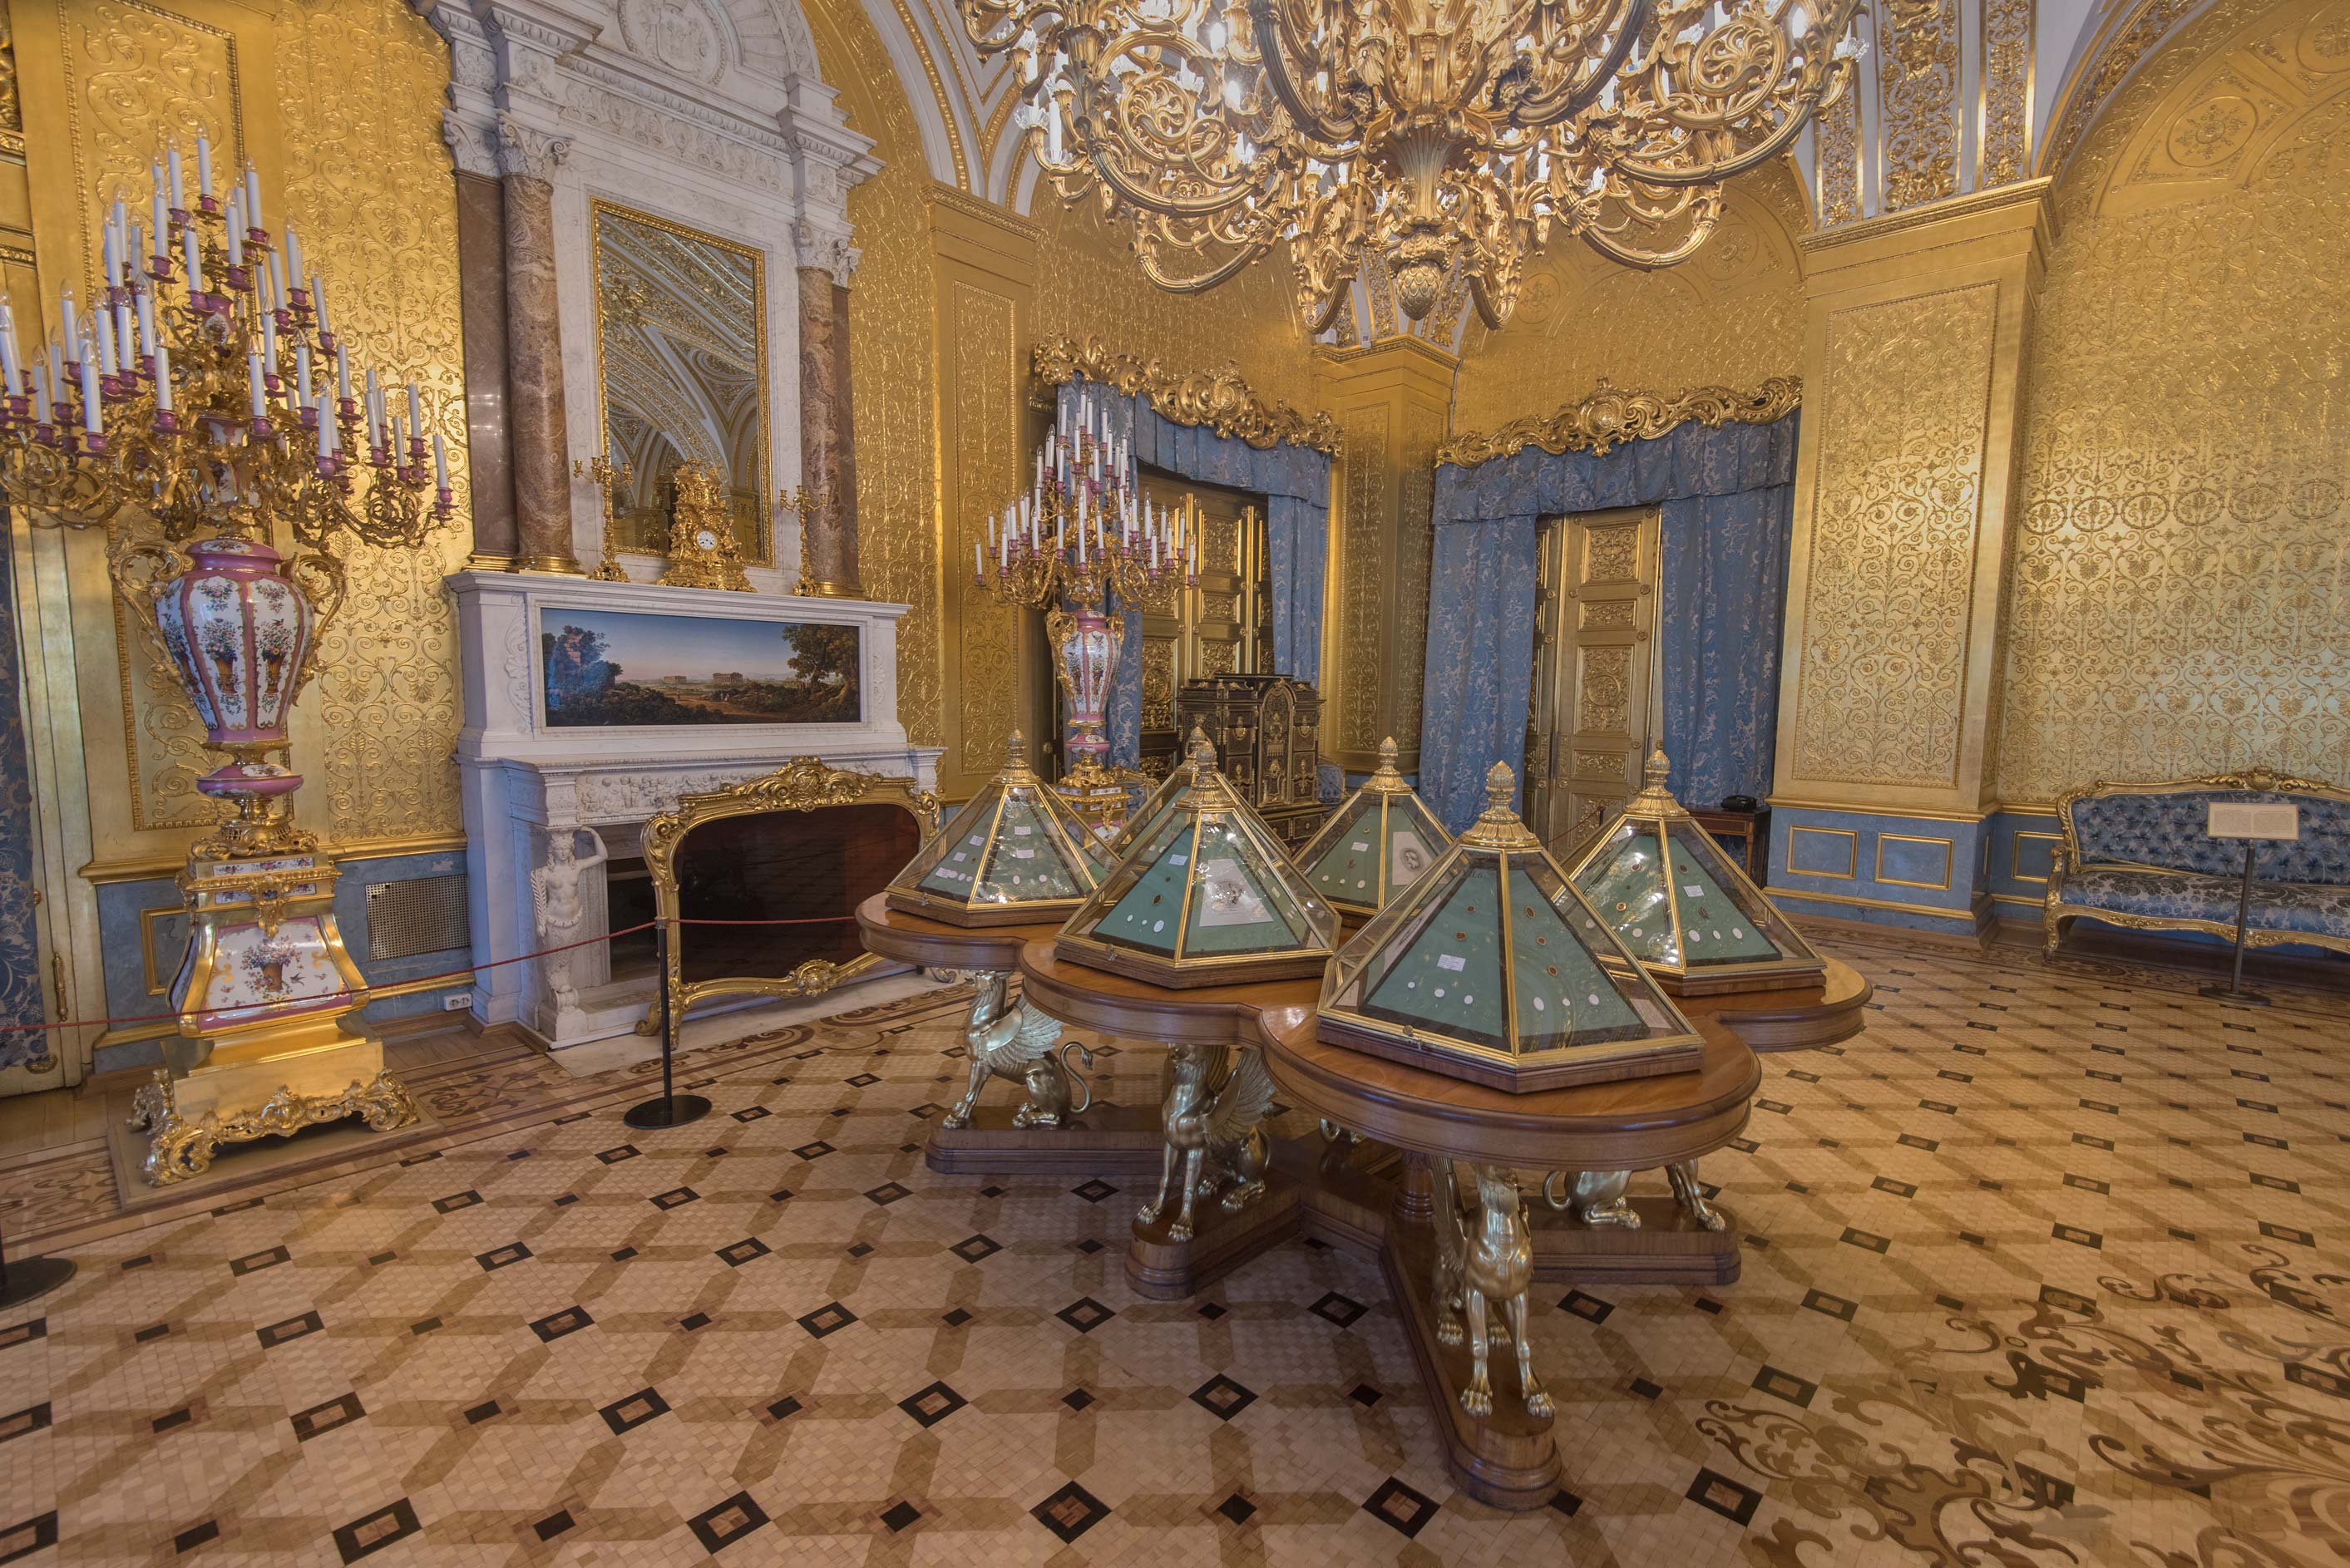 Gold Drawing Room in Hermitage Museum. St.Petersburg, Russia